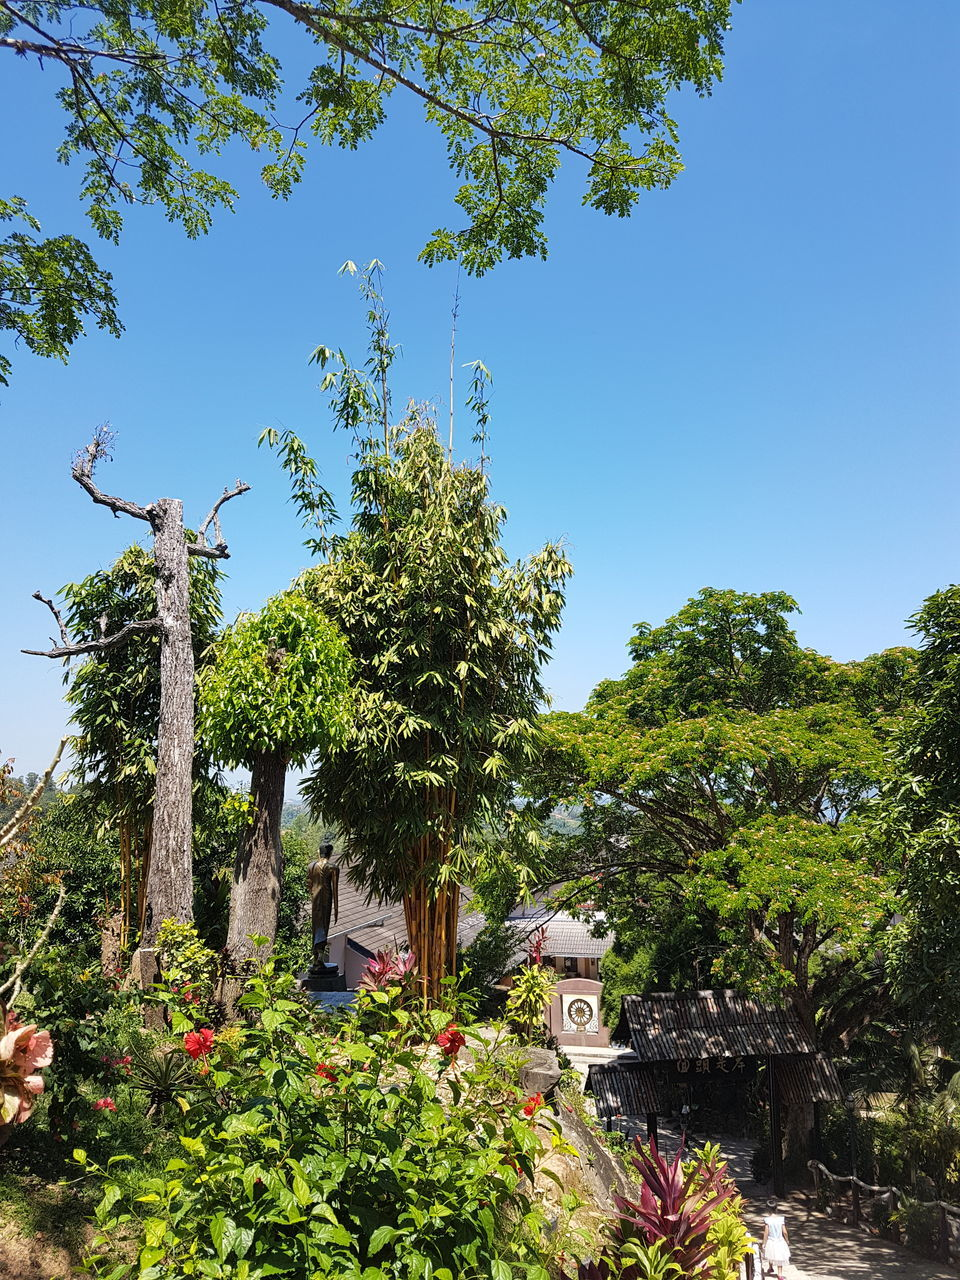 Low Angle View Of Flower Trees Against Clear Blue Sky